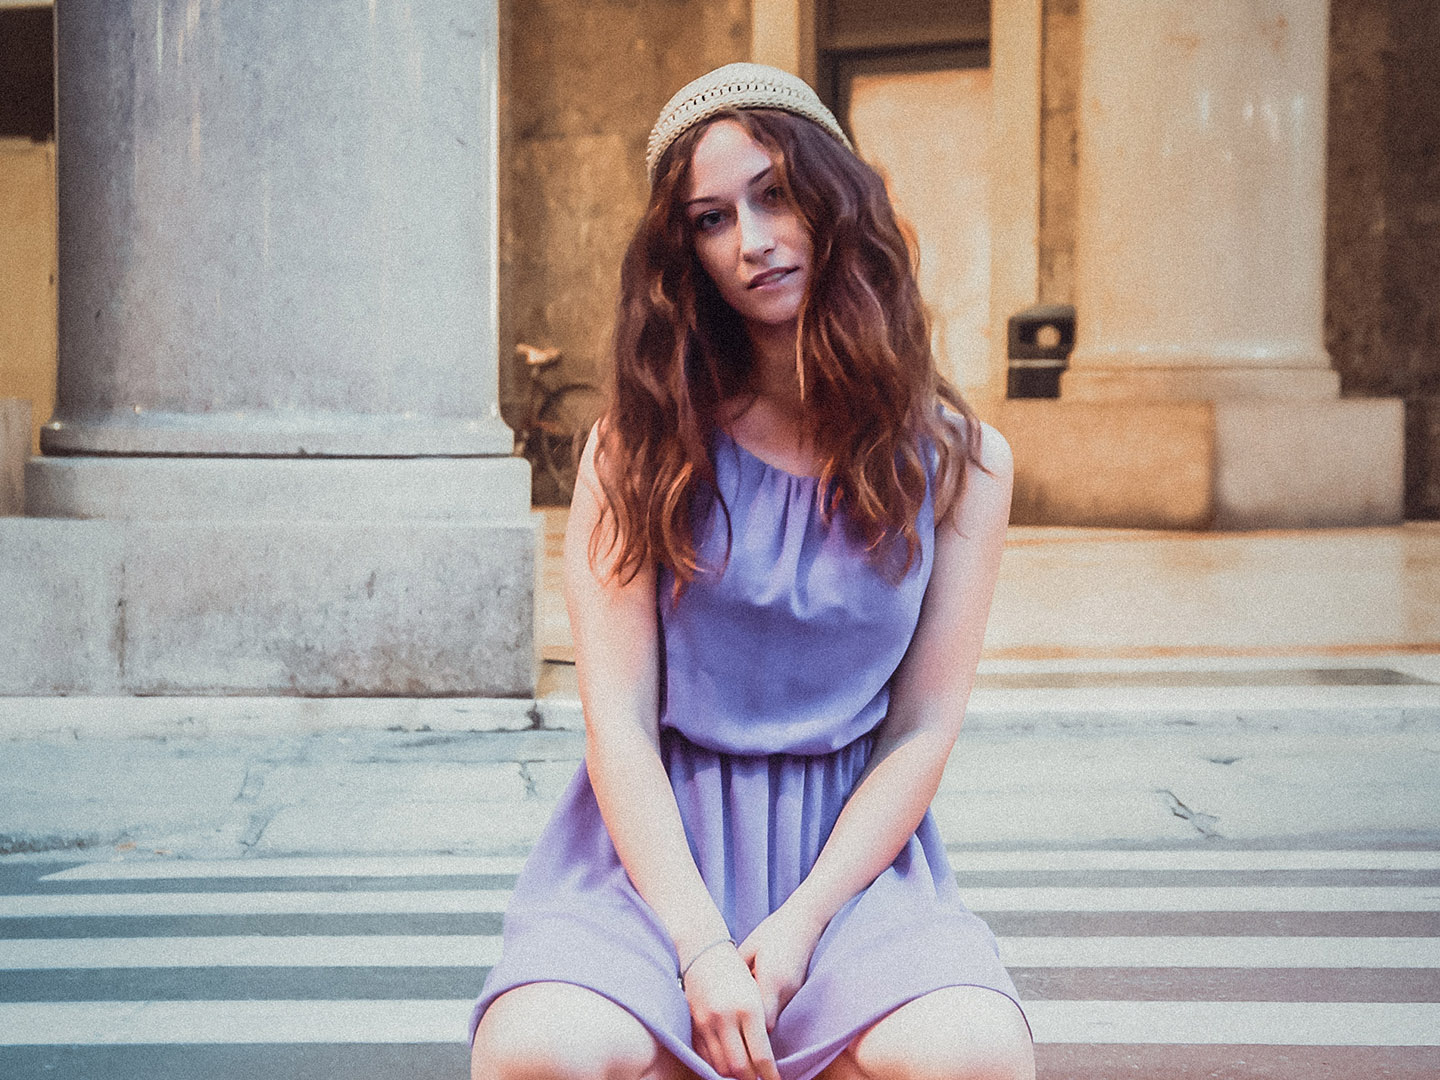 Categories: Fashion, Portrait, Street; Photo: ALESSIO CUNEGO; Model: ELENA CACCIALANZA; Location: Cremona, CR